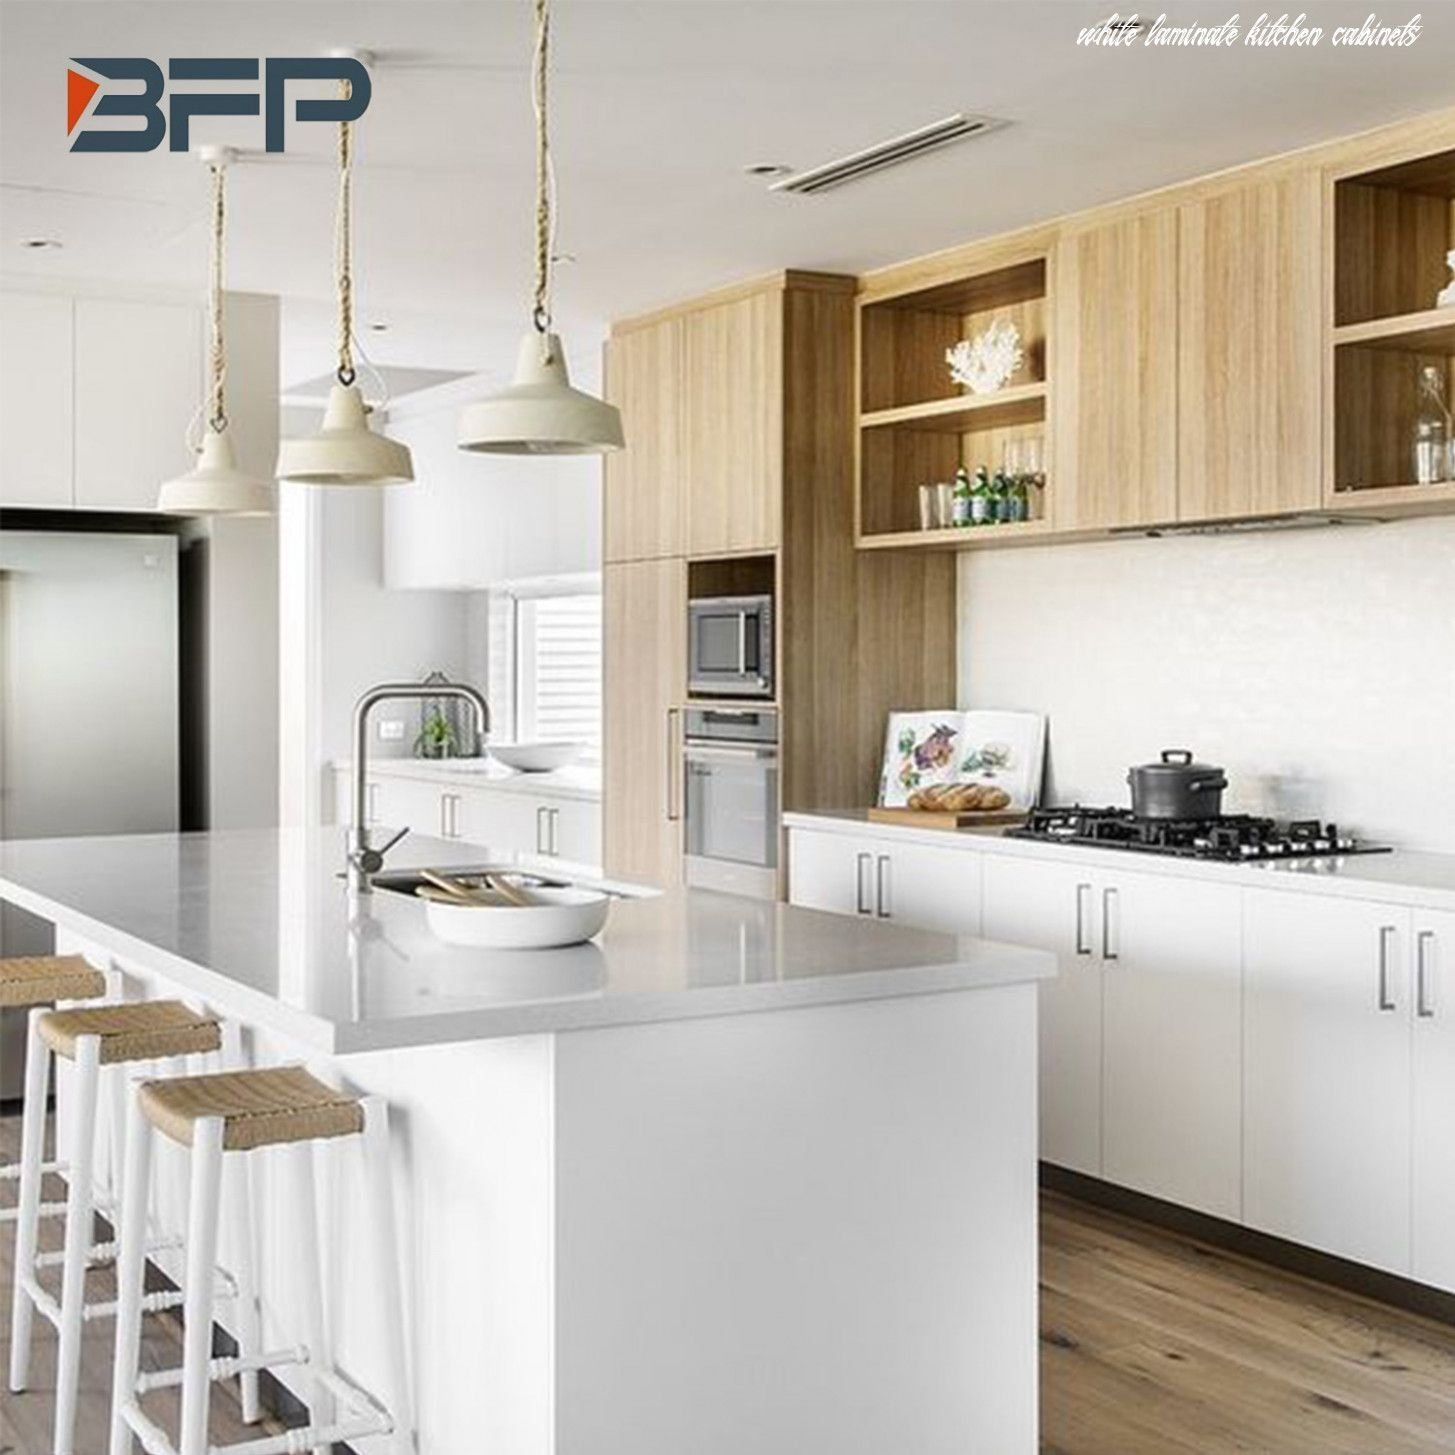 Why White Laminate Kitchen Cabinets Had Been So Popular Till Now 1001 In 2020 Laminate Kitchen Kitchen Interior Laminate Kitchen Cabinets